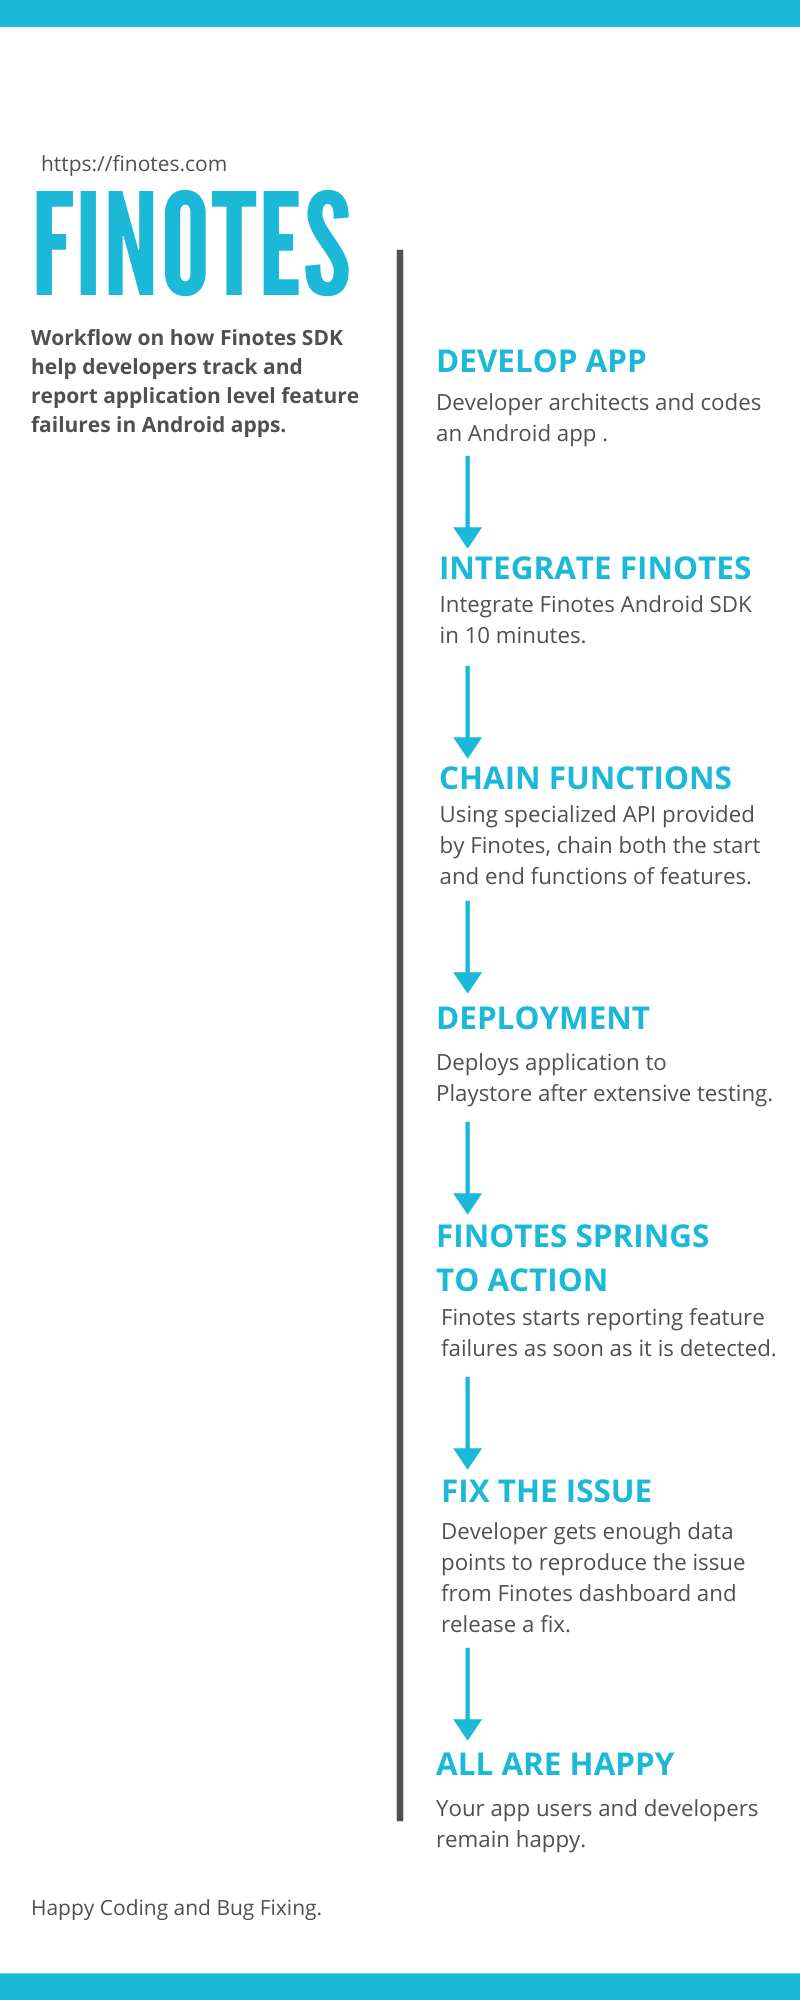 Infographics image which shows overview of how Finotes SDK help to report feature failures